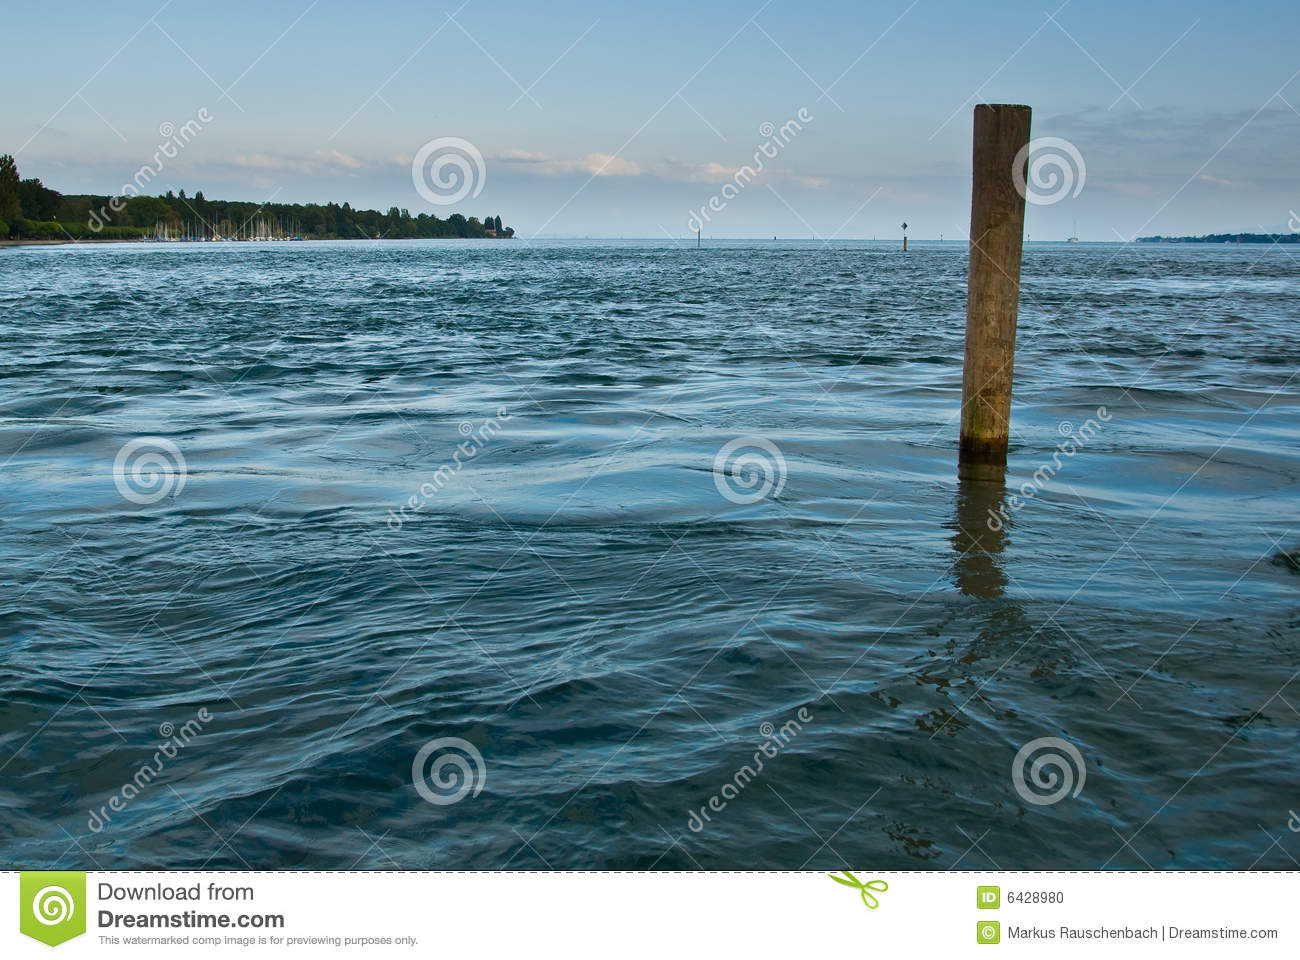 Constance Germany  city photos gallery : Lake Constance Germany Stock Photo Image: 6428980